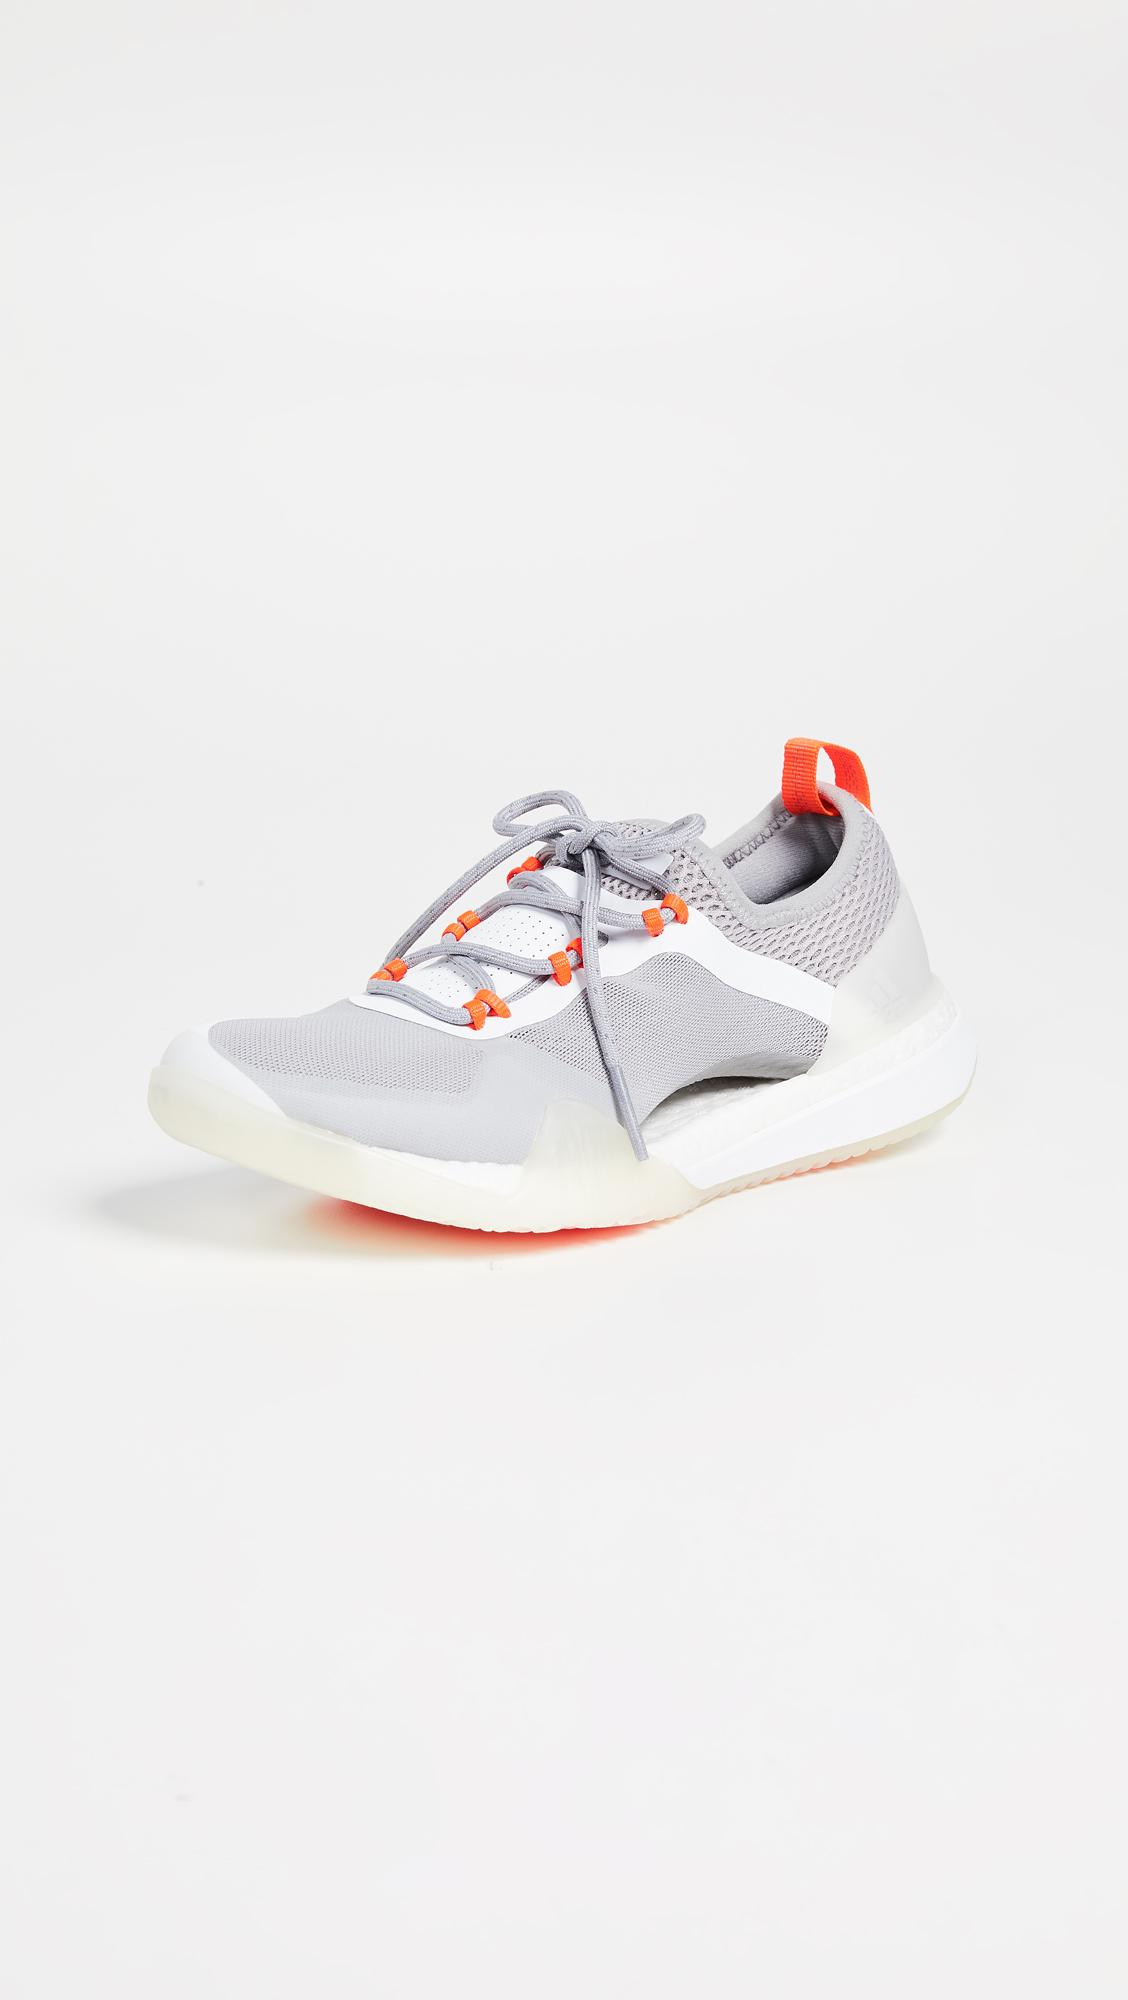 d045a466d6f5ee Lyst - adidas By Stella McCartney Pureboost X Tr 3.0 Sneakers in White